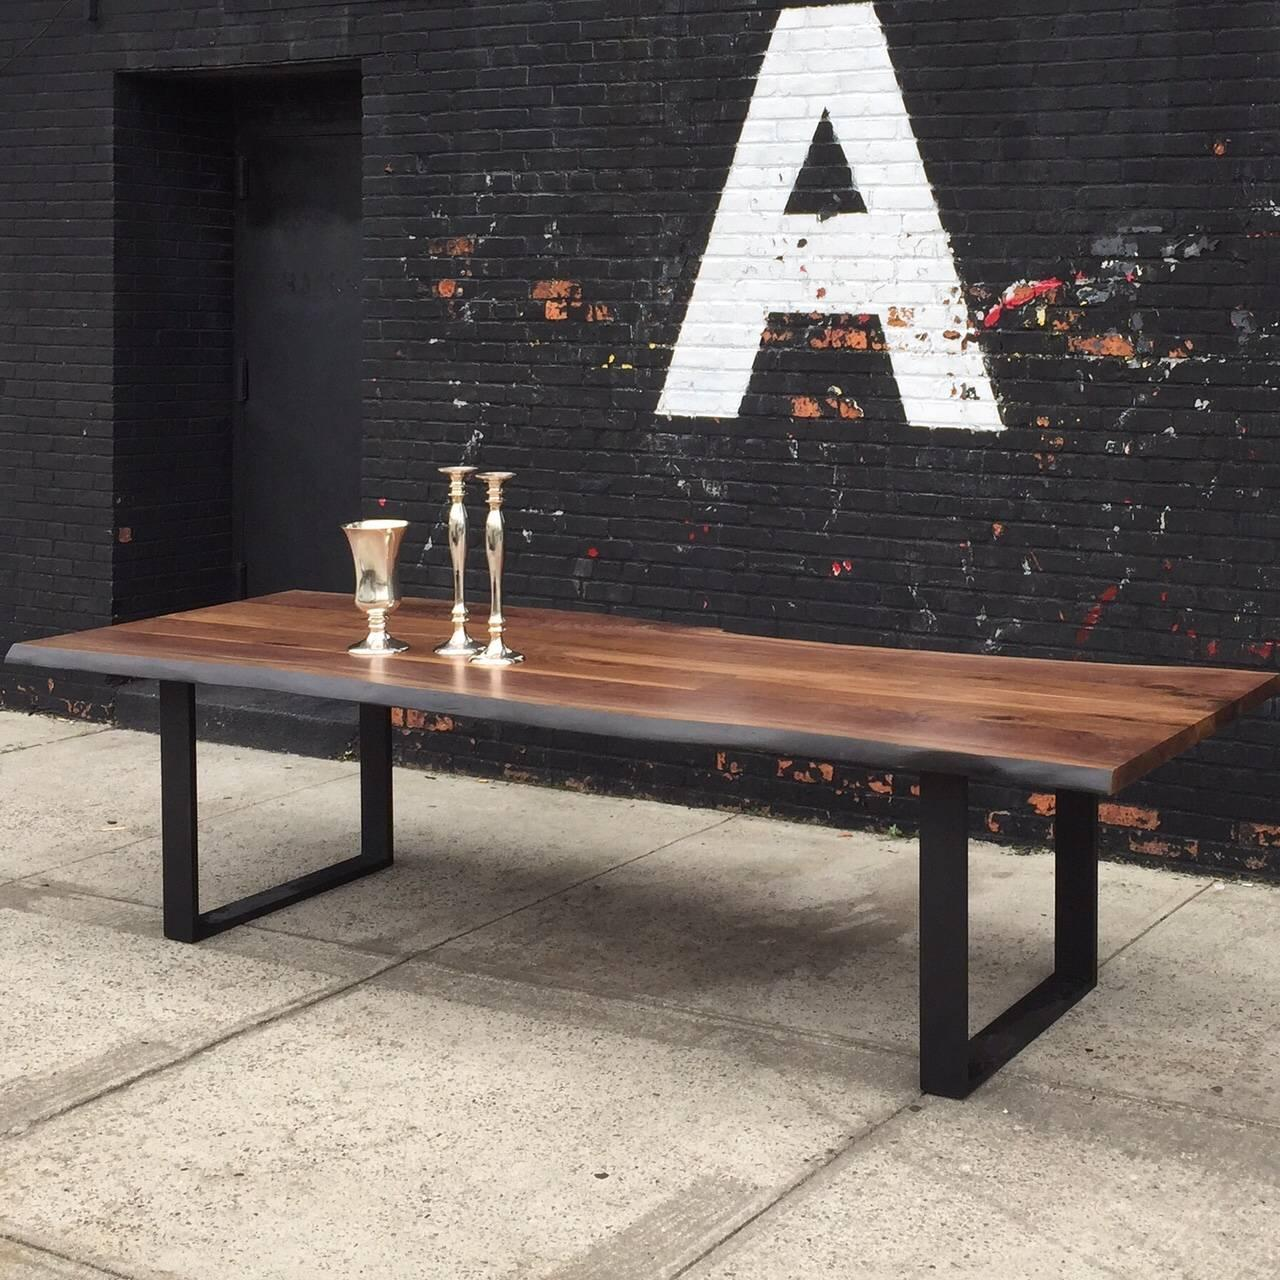 Sentient Signature Live Edge American Black Walnut Slab Table For Sale At 1stdibs